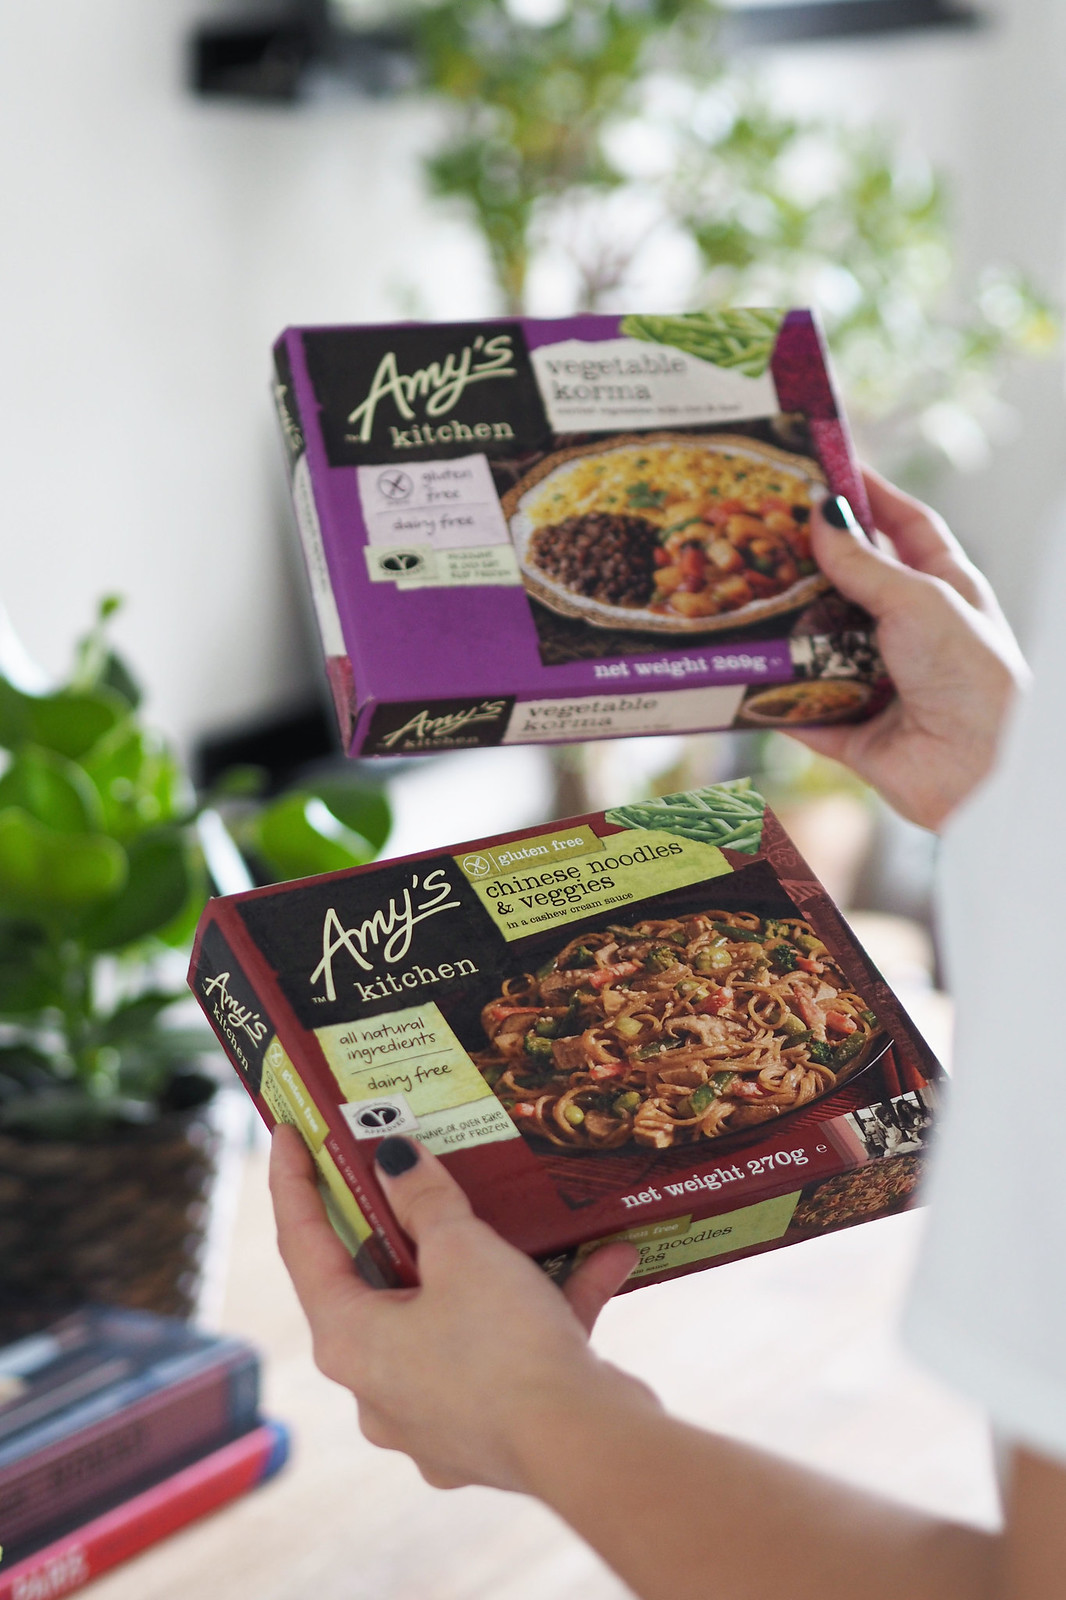 amys kitchen vegan ready meals